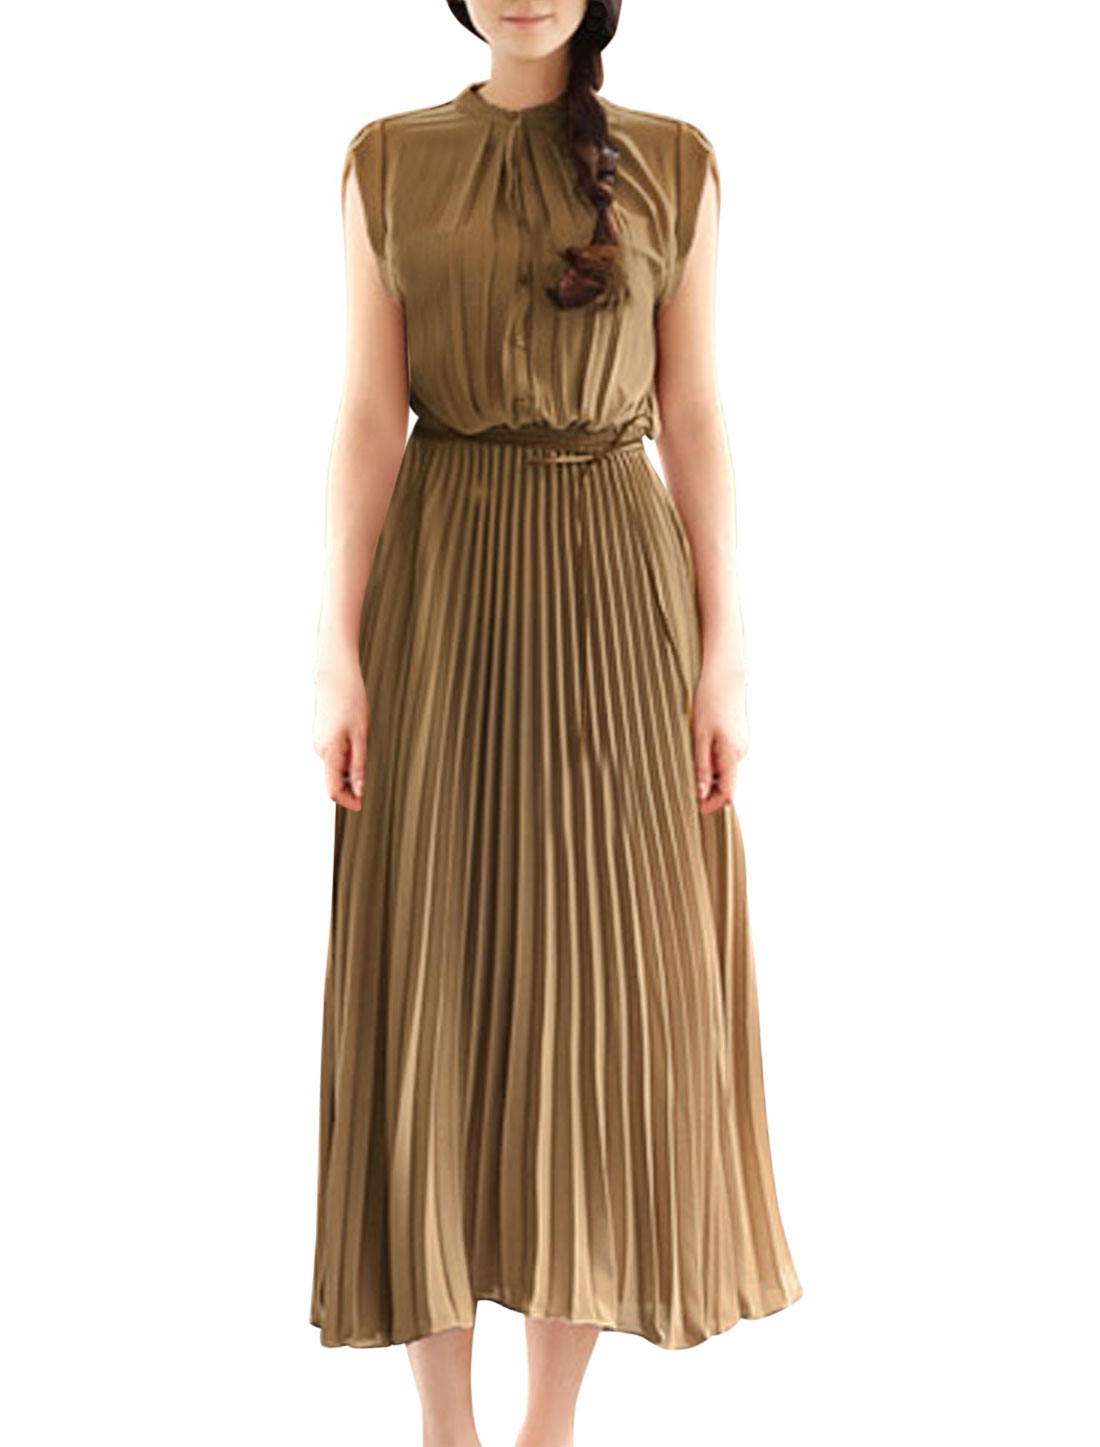 Ladies Button Closed Front Elastic Waist Brown Pleated Dress S